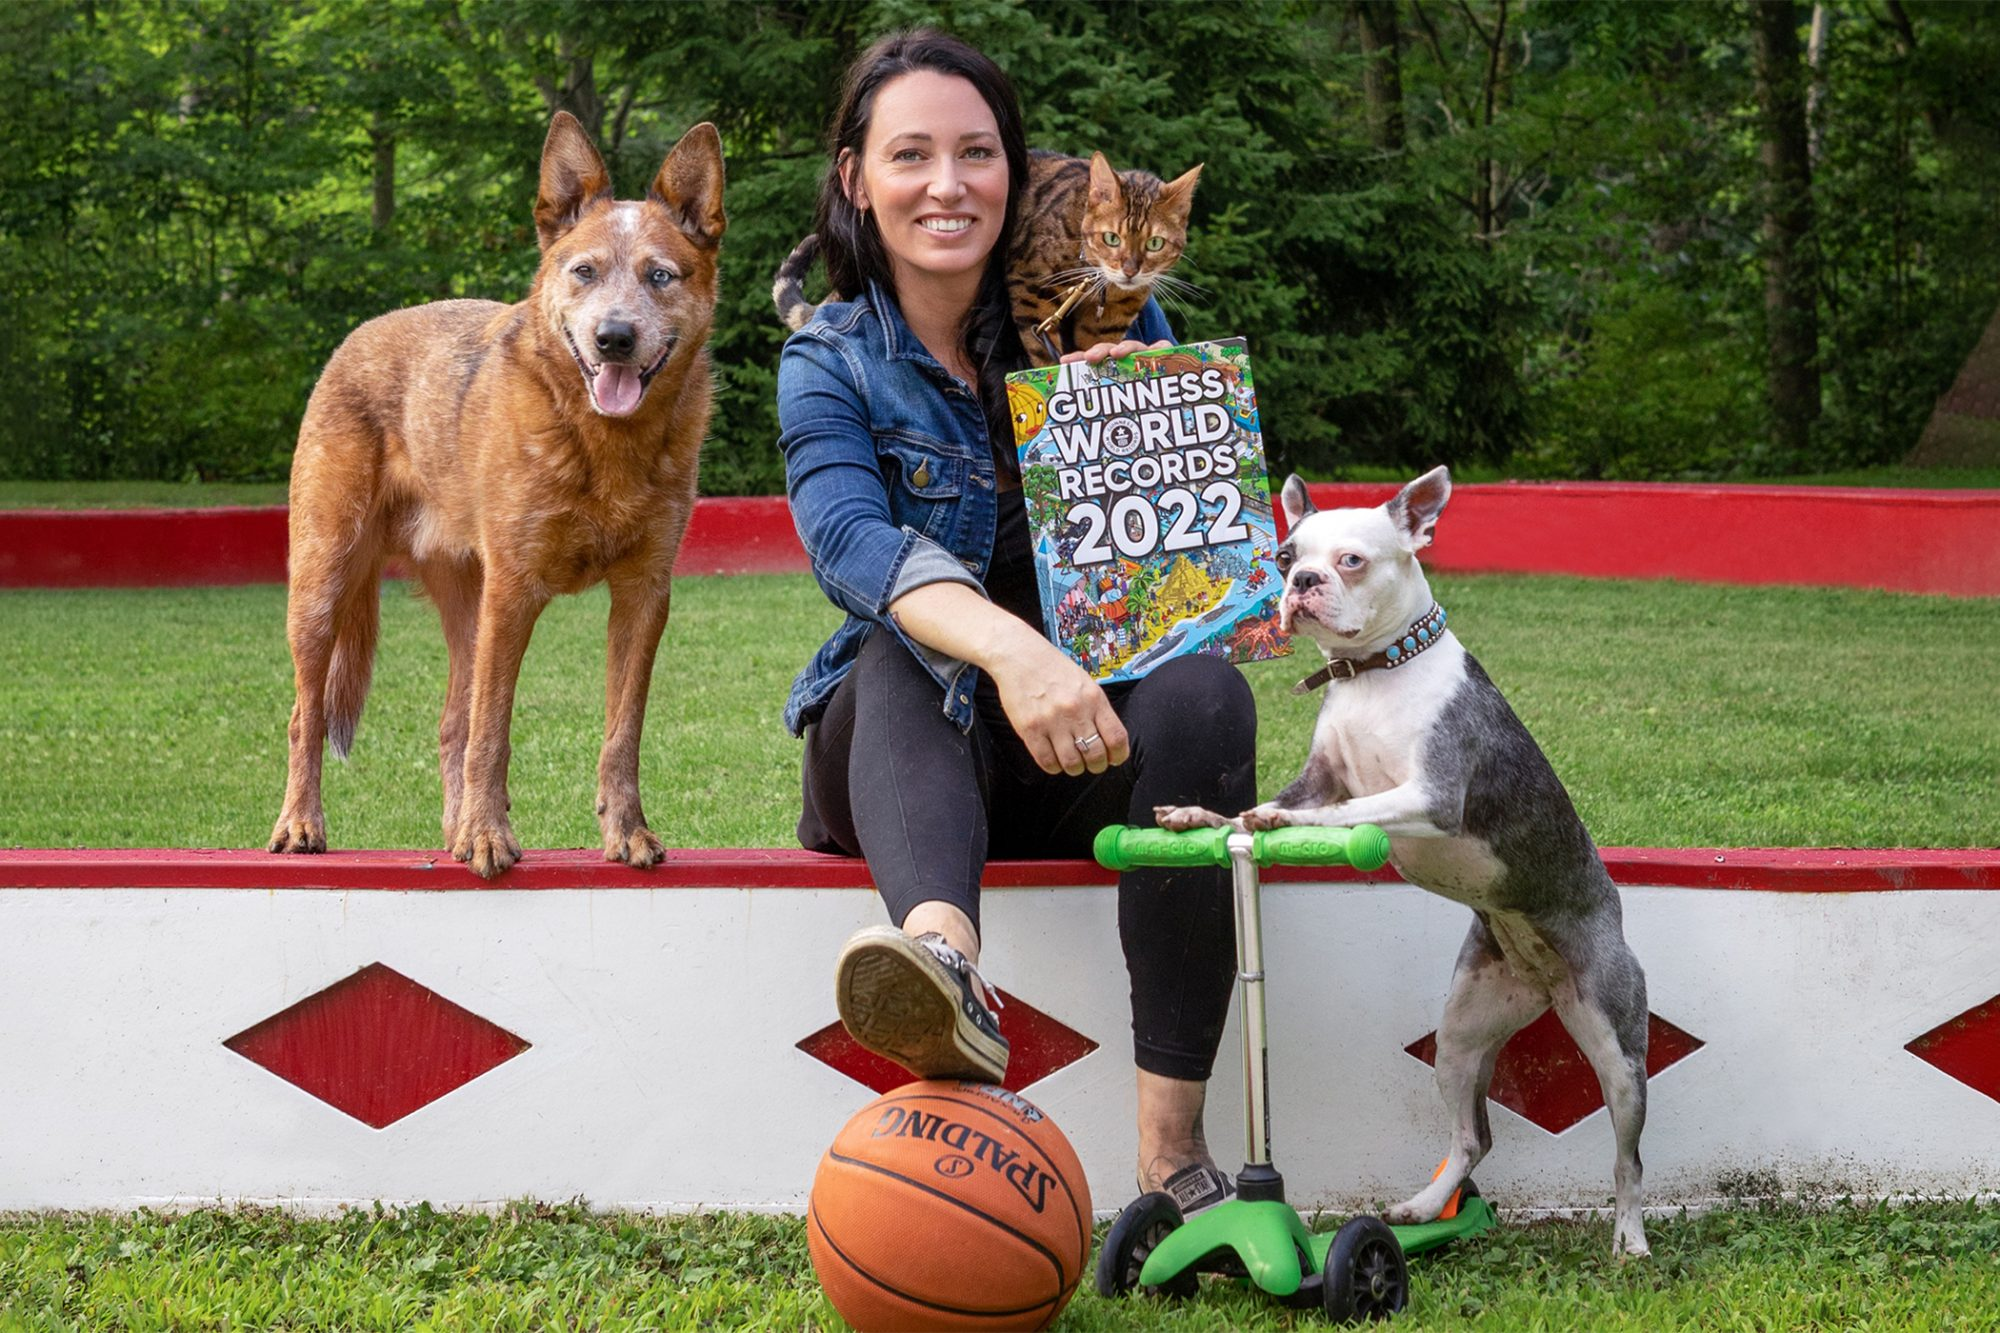 Recipients of the Guinness scooter record, including two dogs and a cat